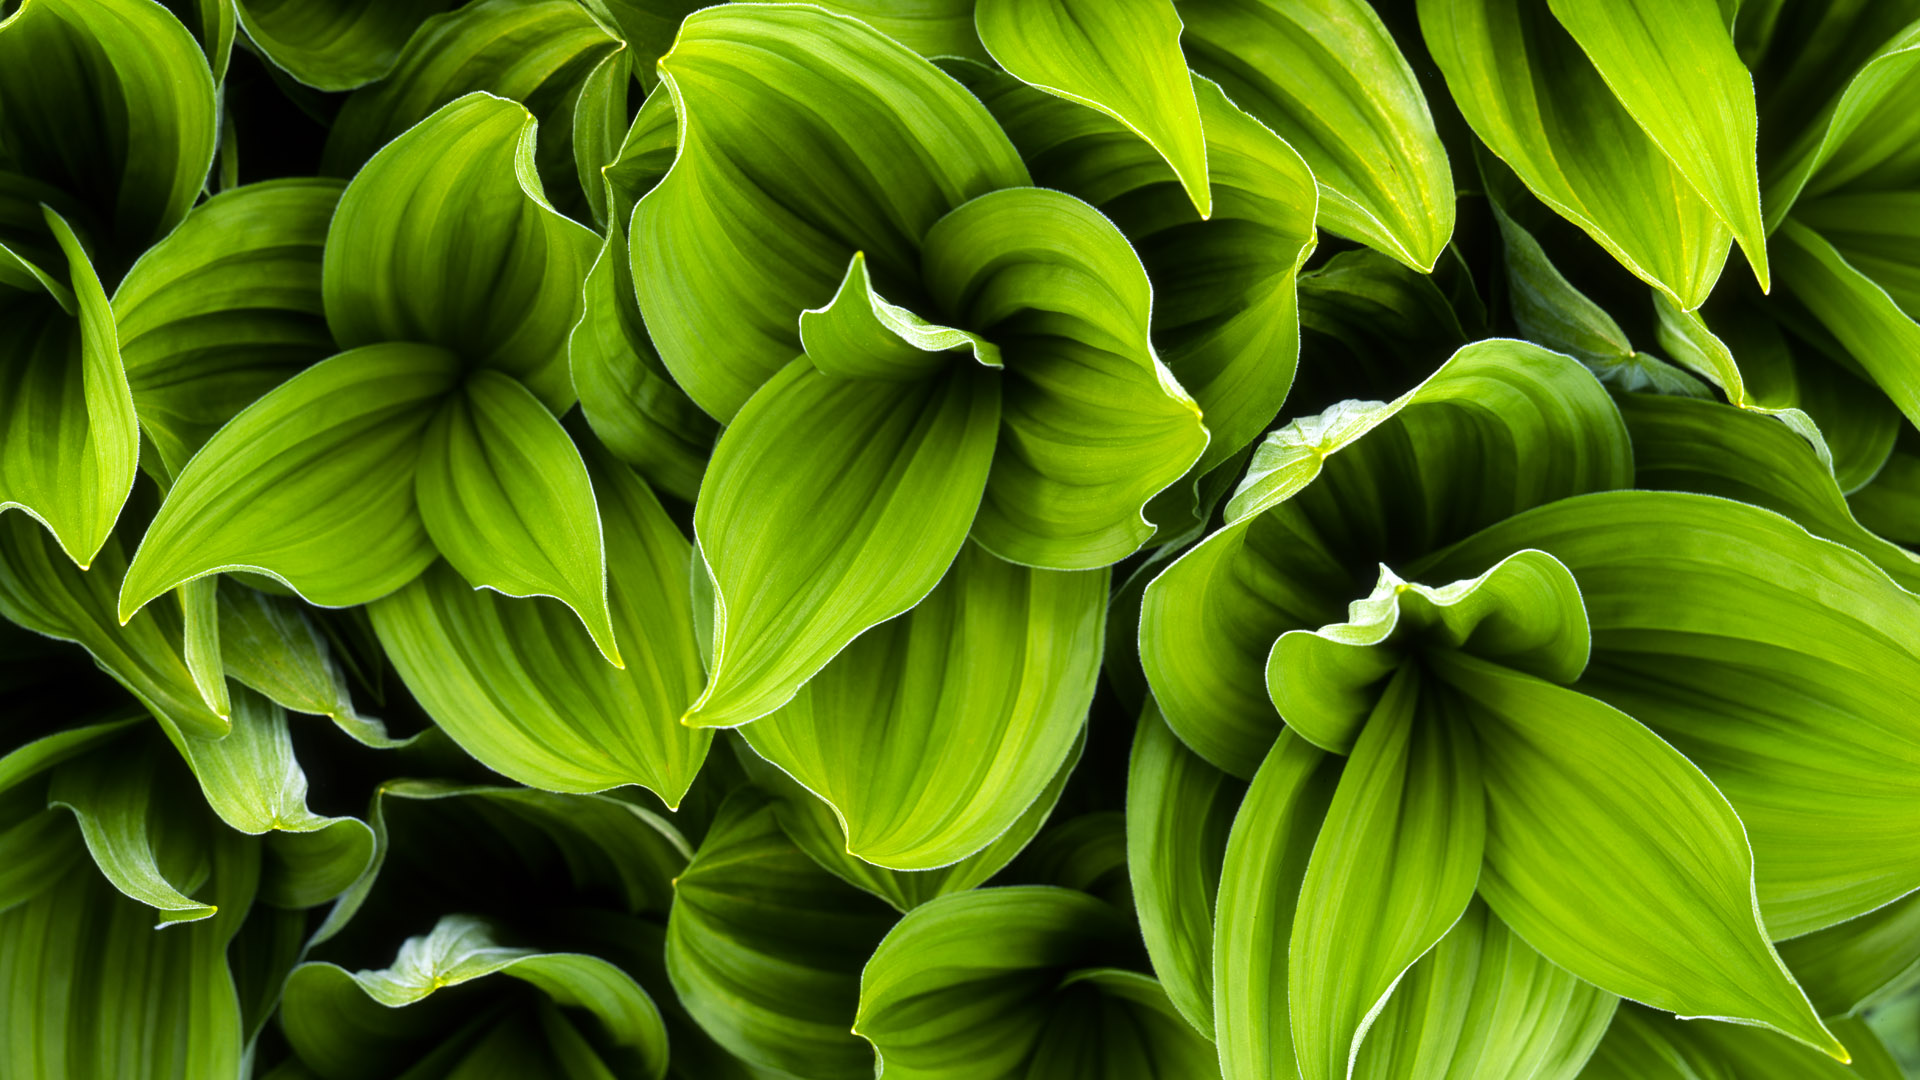 Green Plant Leaves HD Wallpaper | Background Image ...